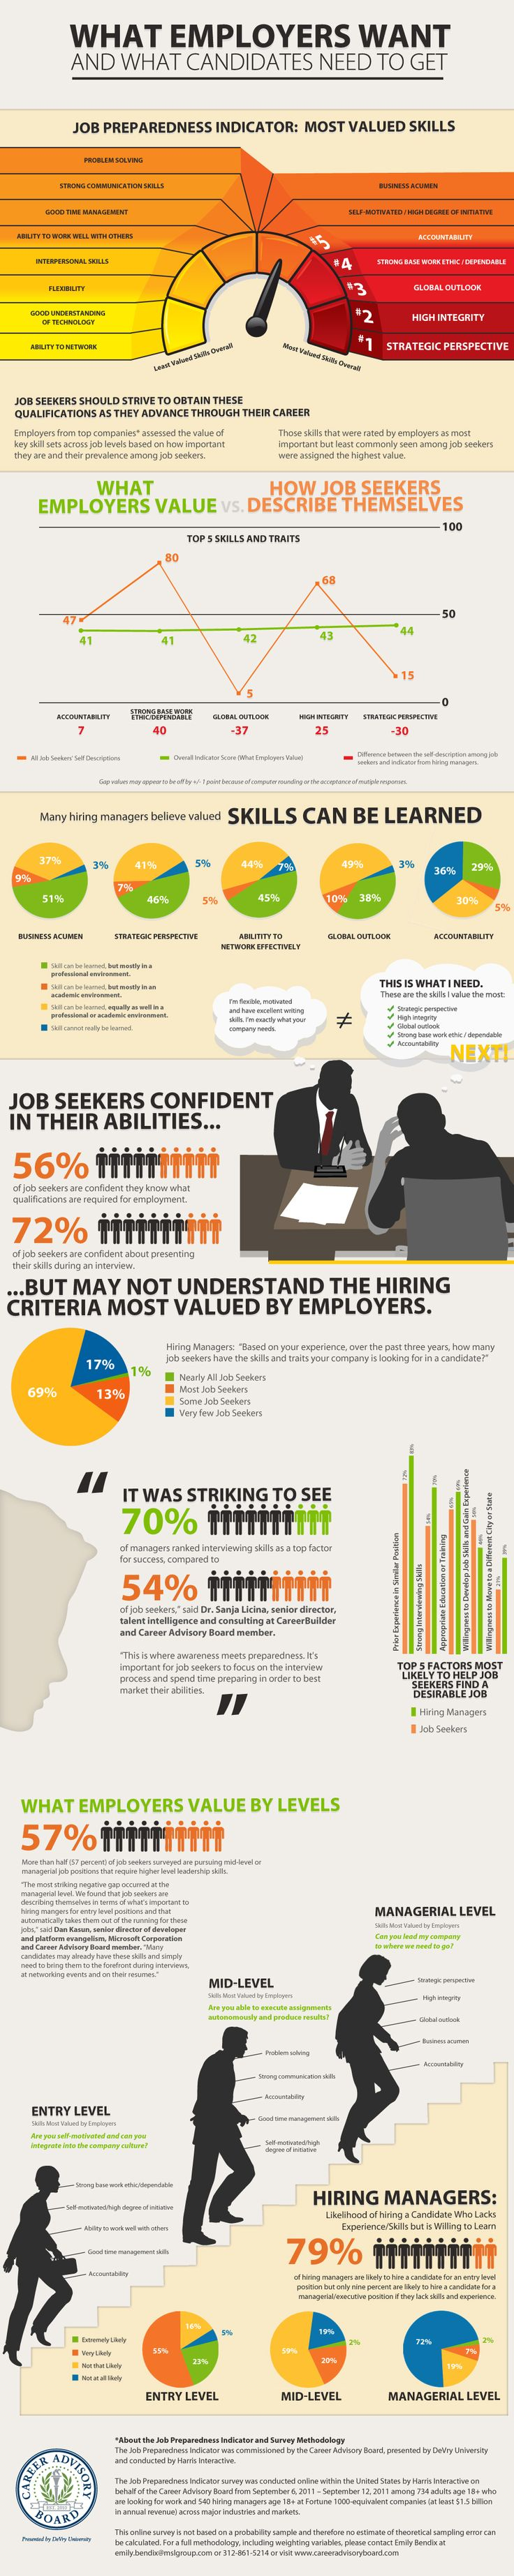 What Skills Do Employers Want from Candidates? [INFOGRAPHIC] http://theundercoverrecruiter.com/skills-employers-candidates-info/ via @The Undercover Recruiter